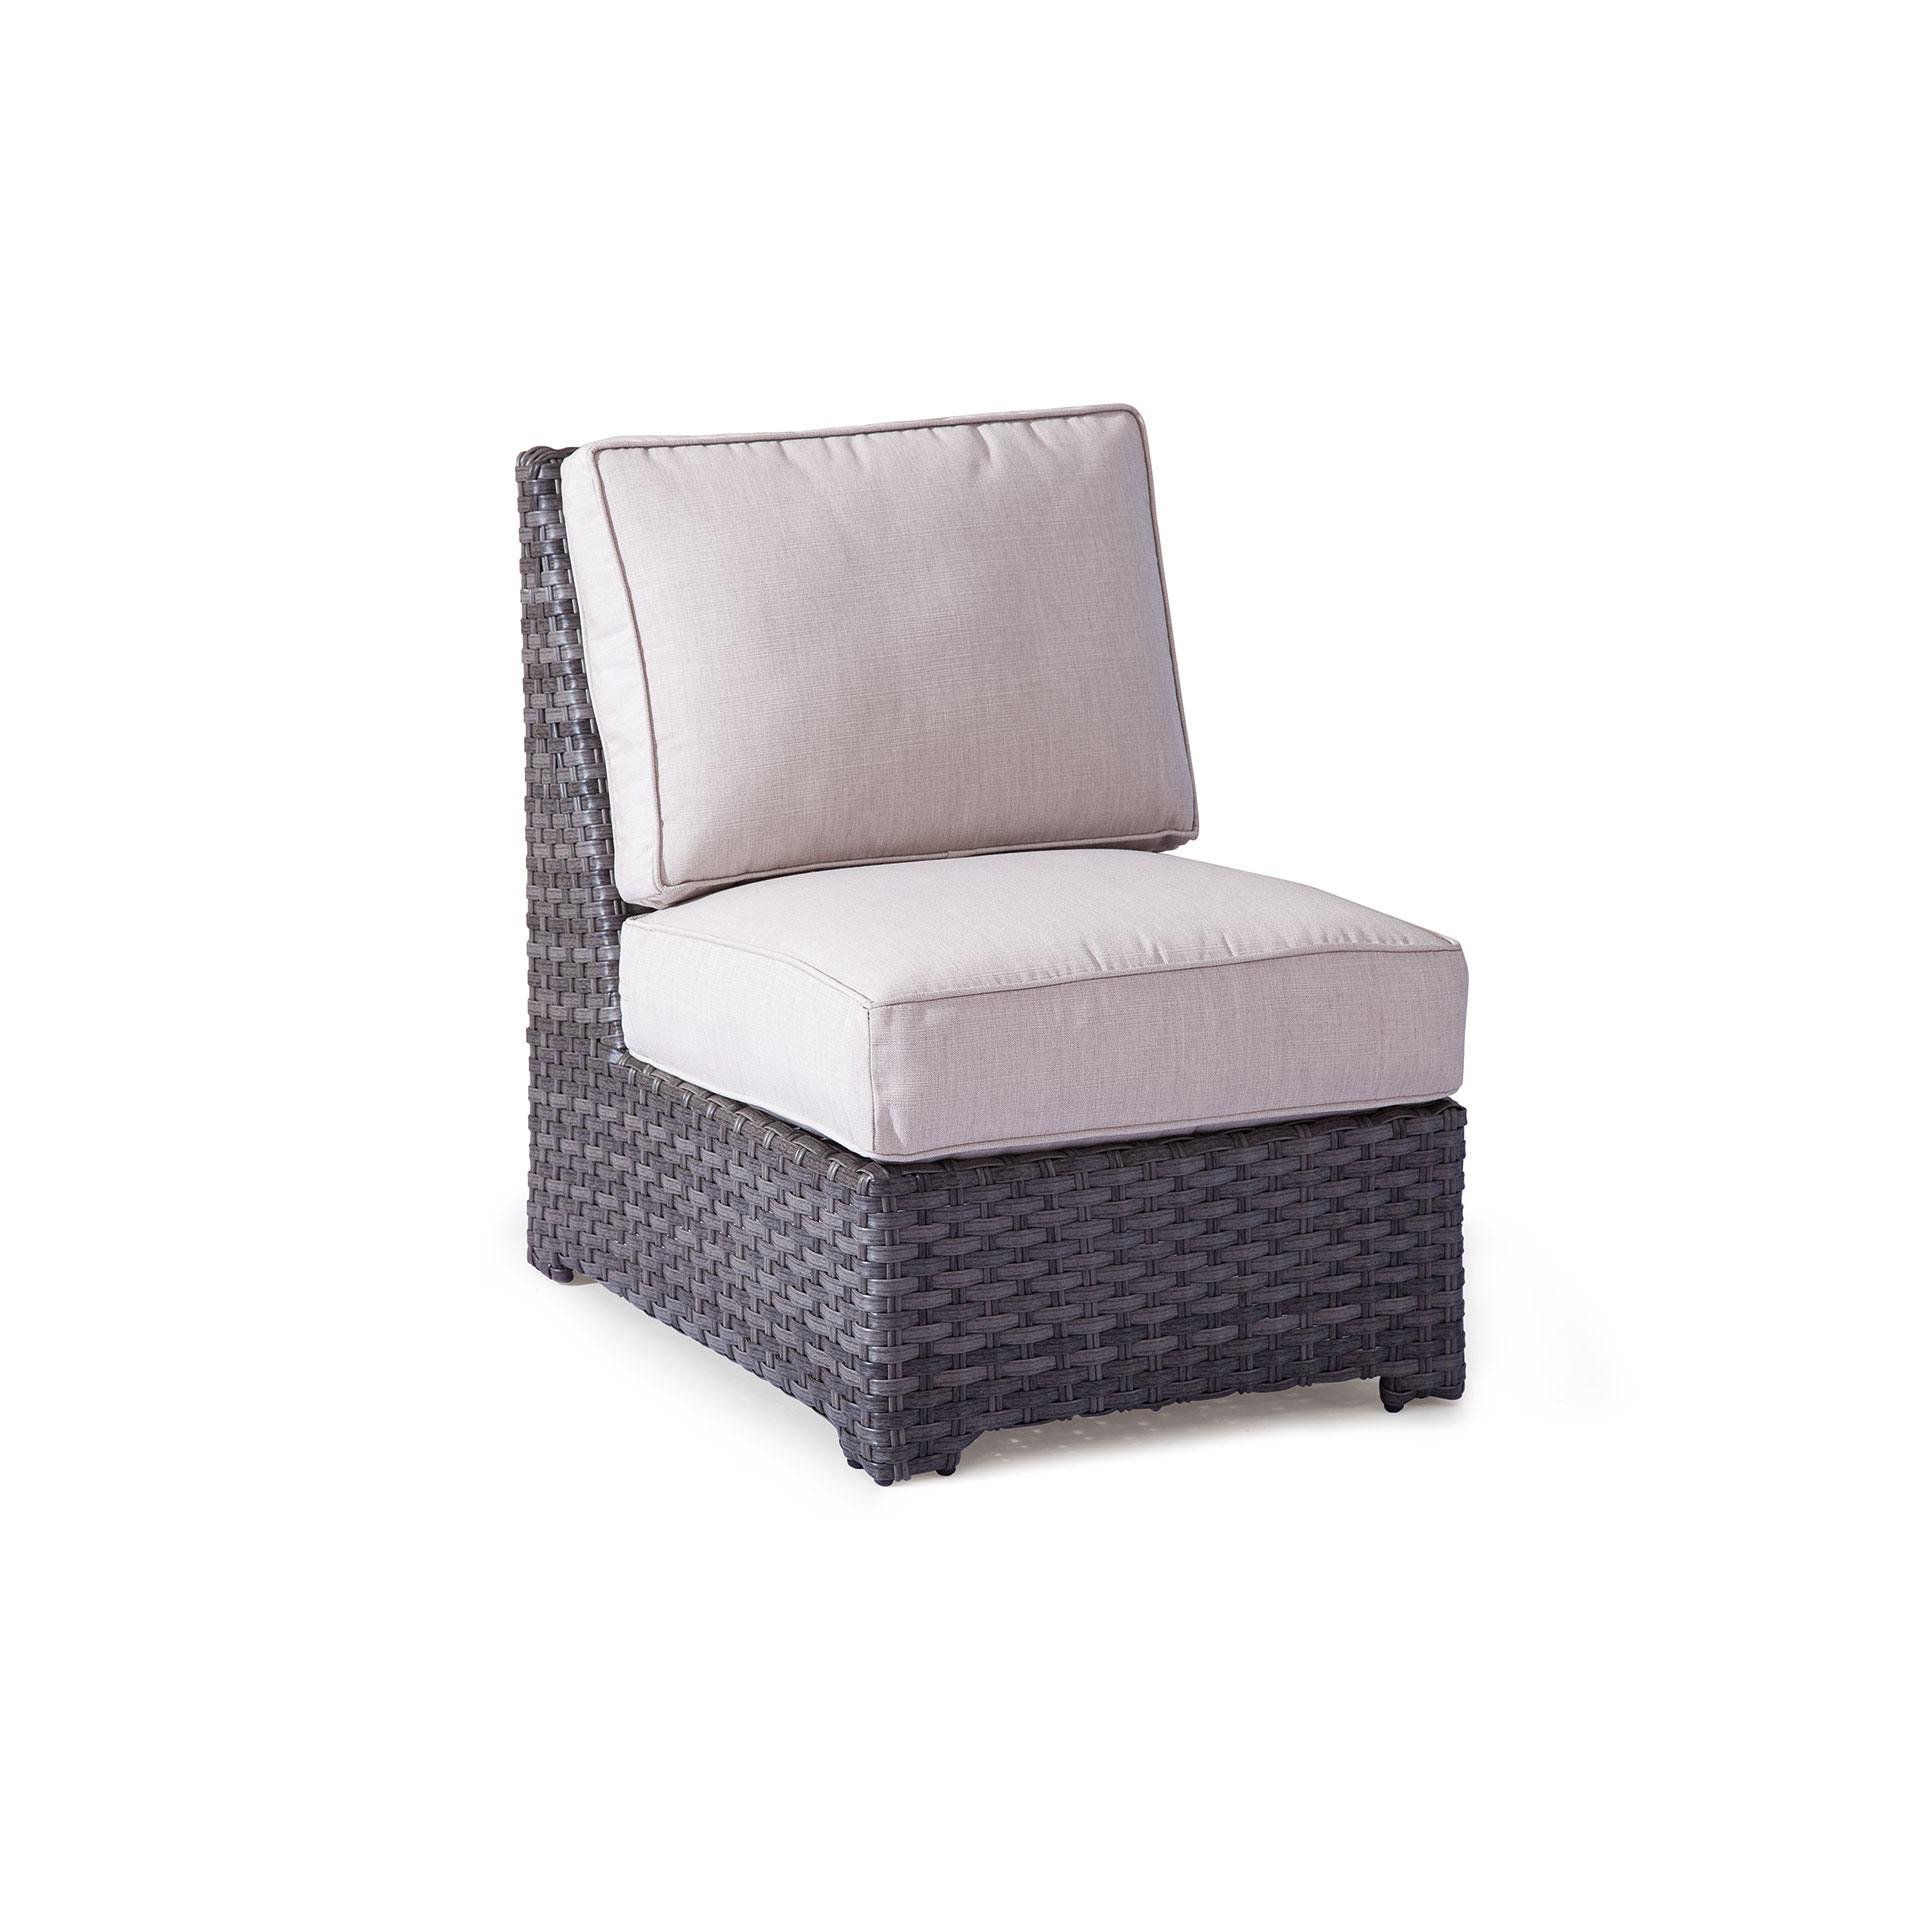 webbed chaise lounge chairs glider chair slipcovers aluminum